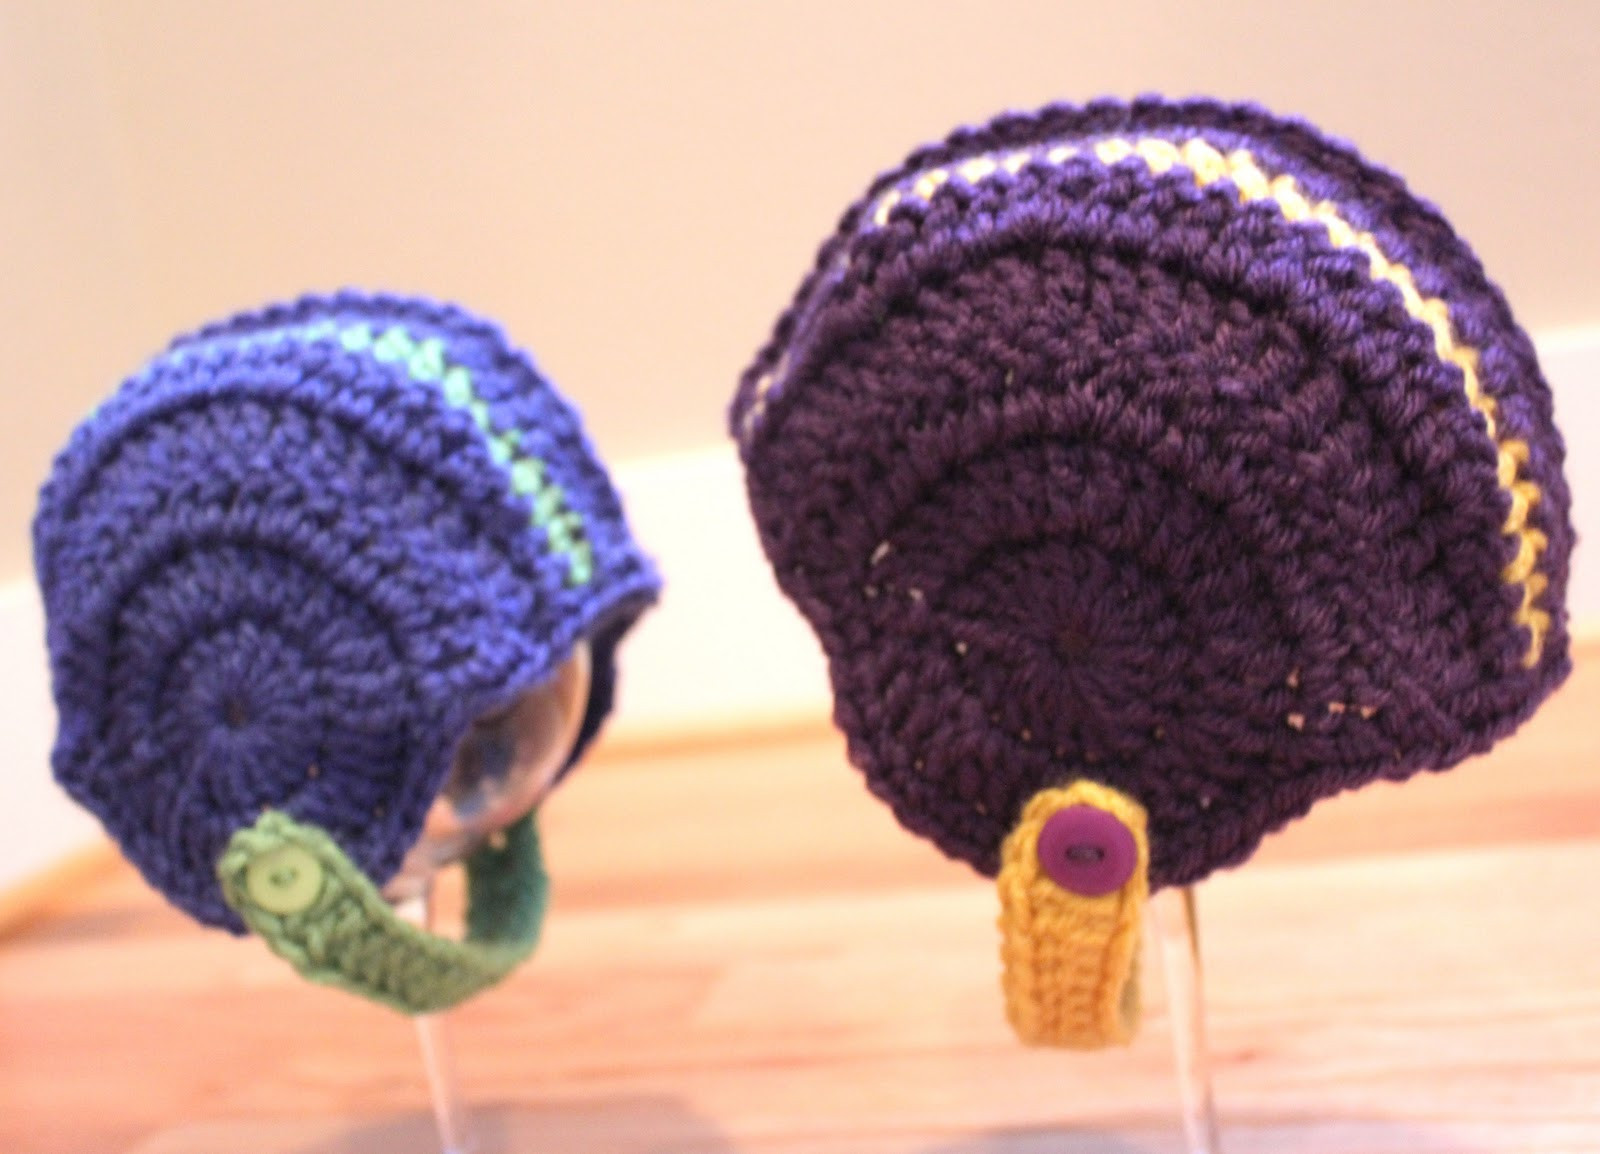 Best Of Repeat Crafter Me Crocheted Football Helmets Crochet Football Helmets Of Lovely 48 Pics Crochet Football Helmets